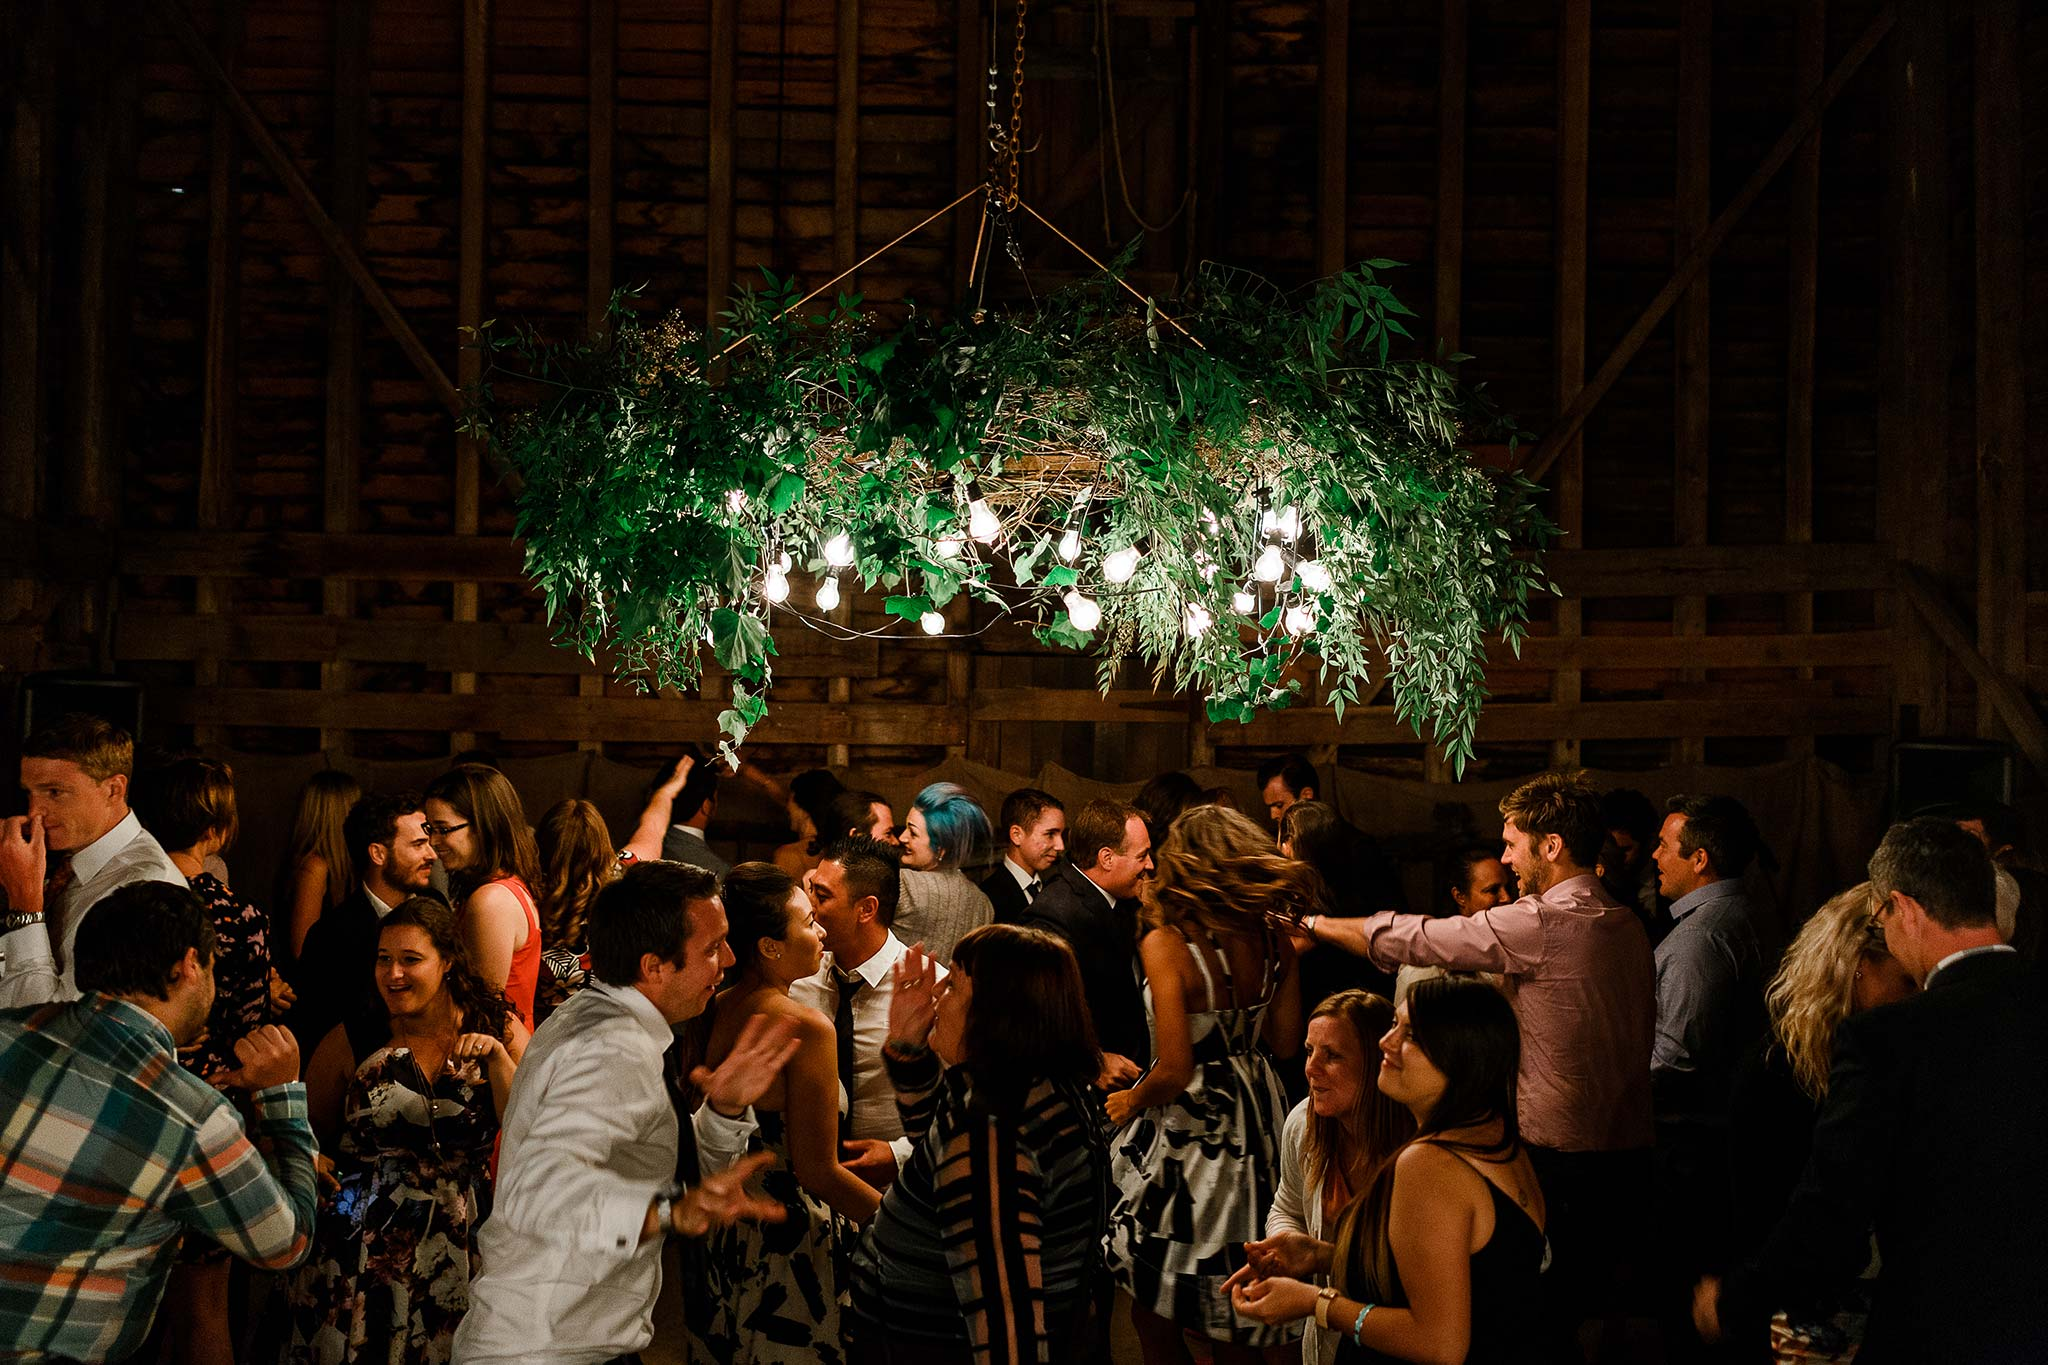 Launceston-Brickendon-barn-Wedding-Photographer-reception-dance-floor